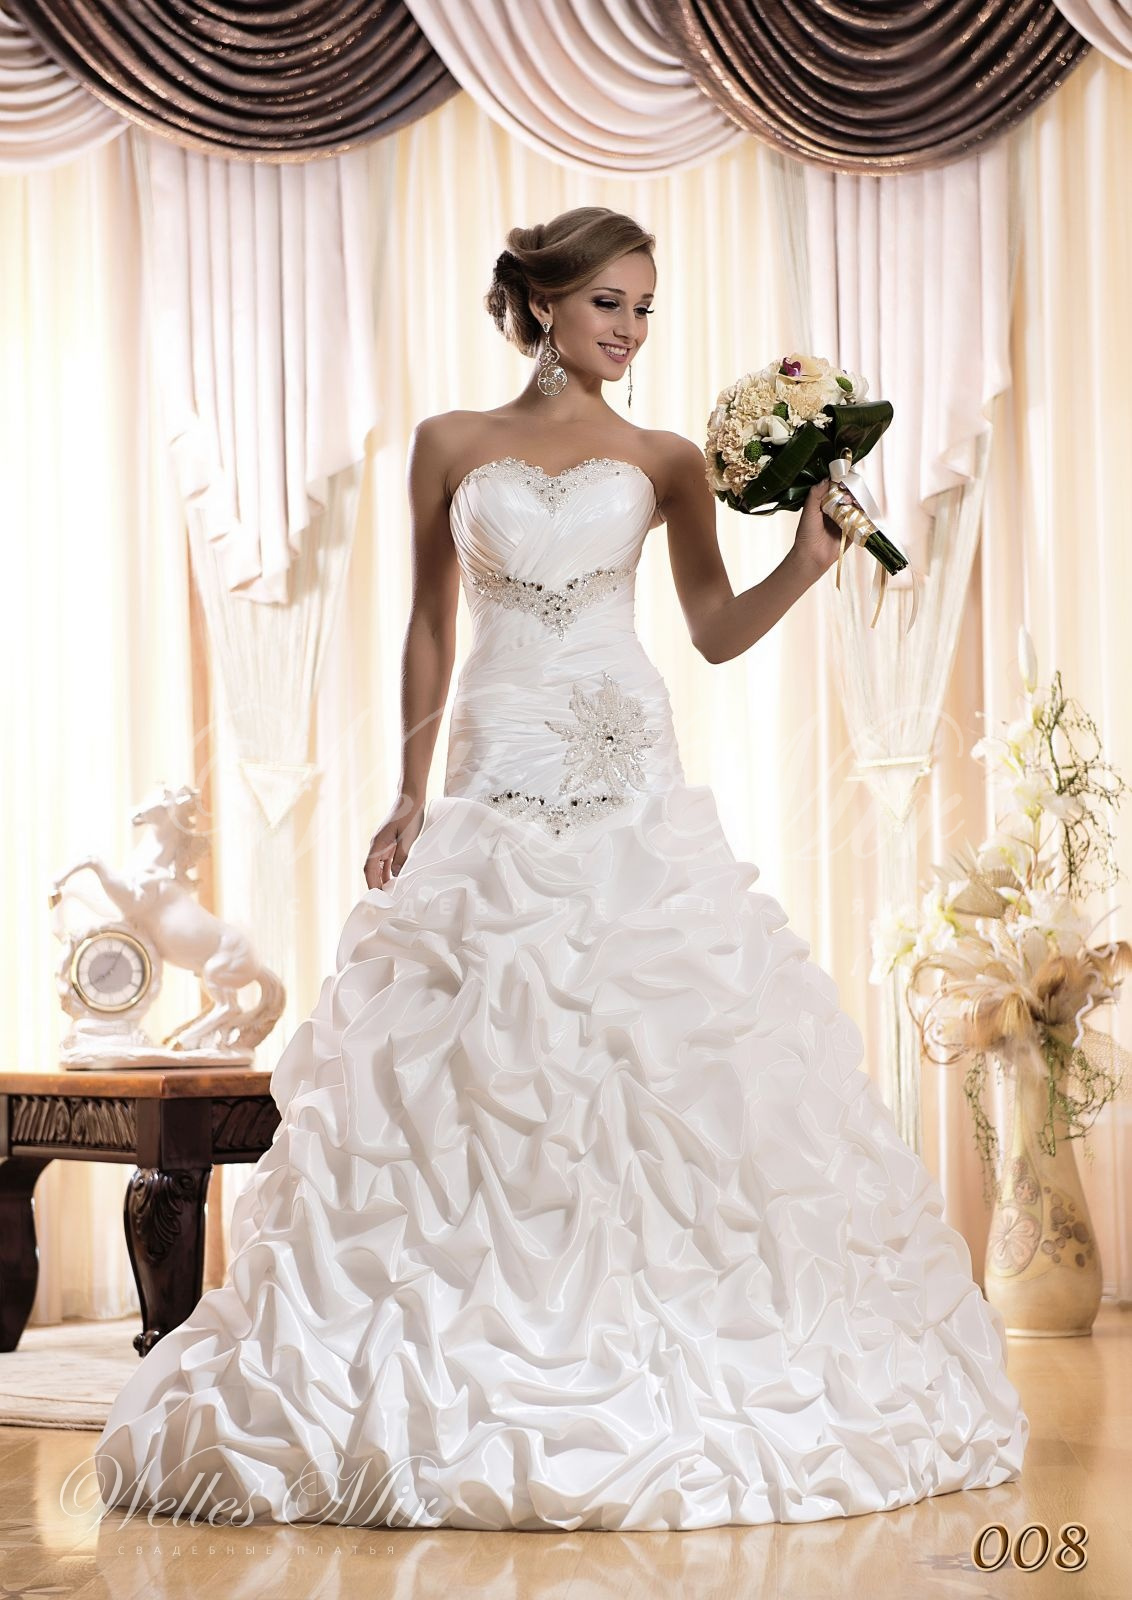 Wedding dresses 008